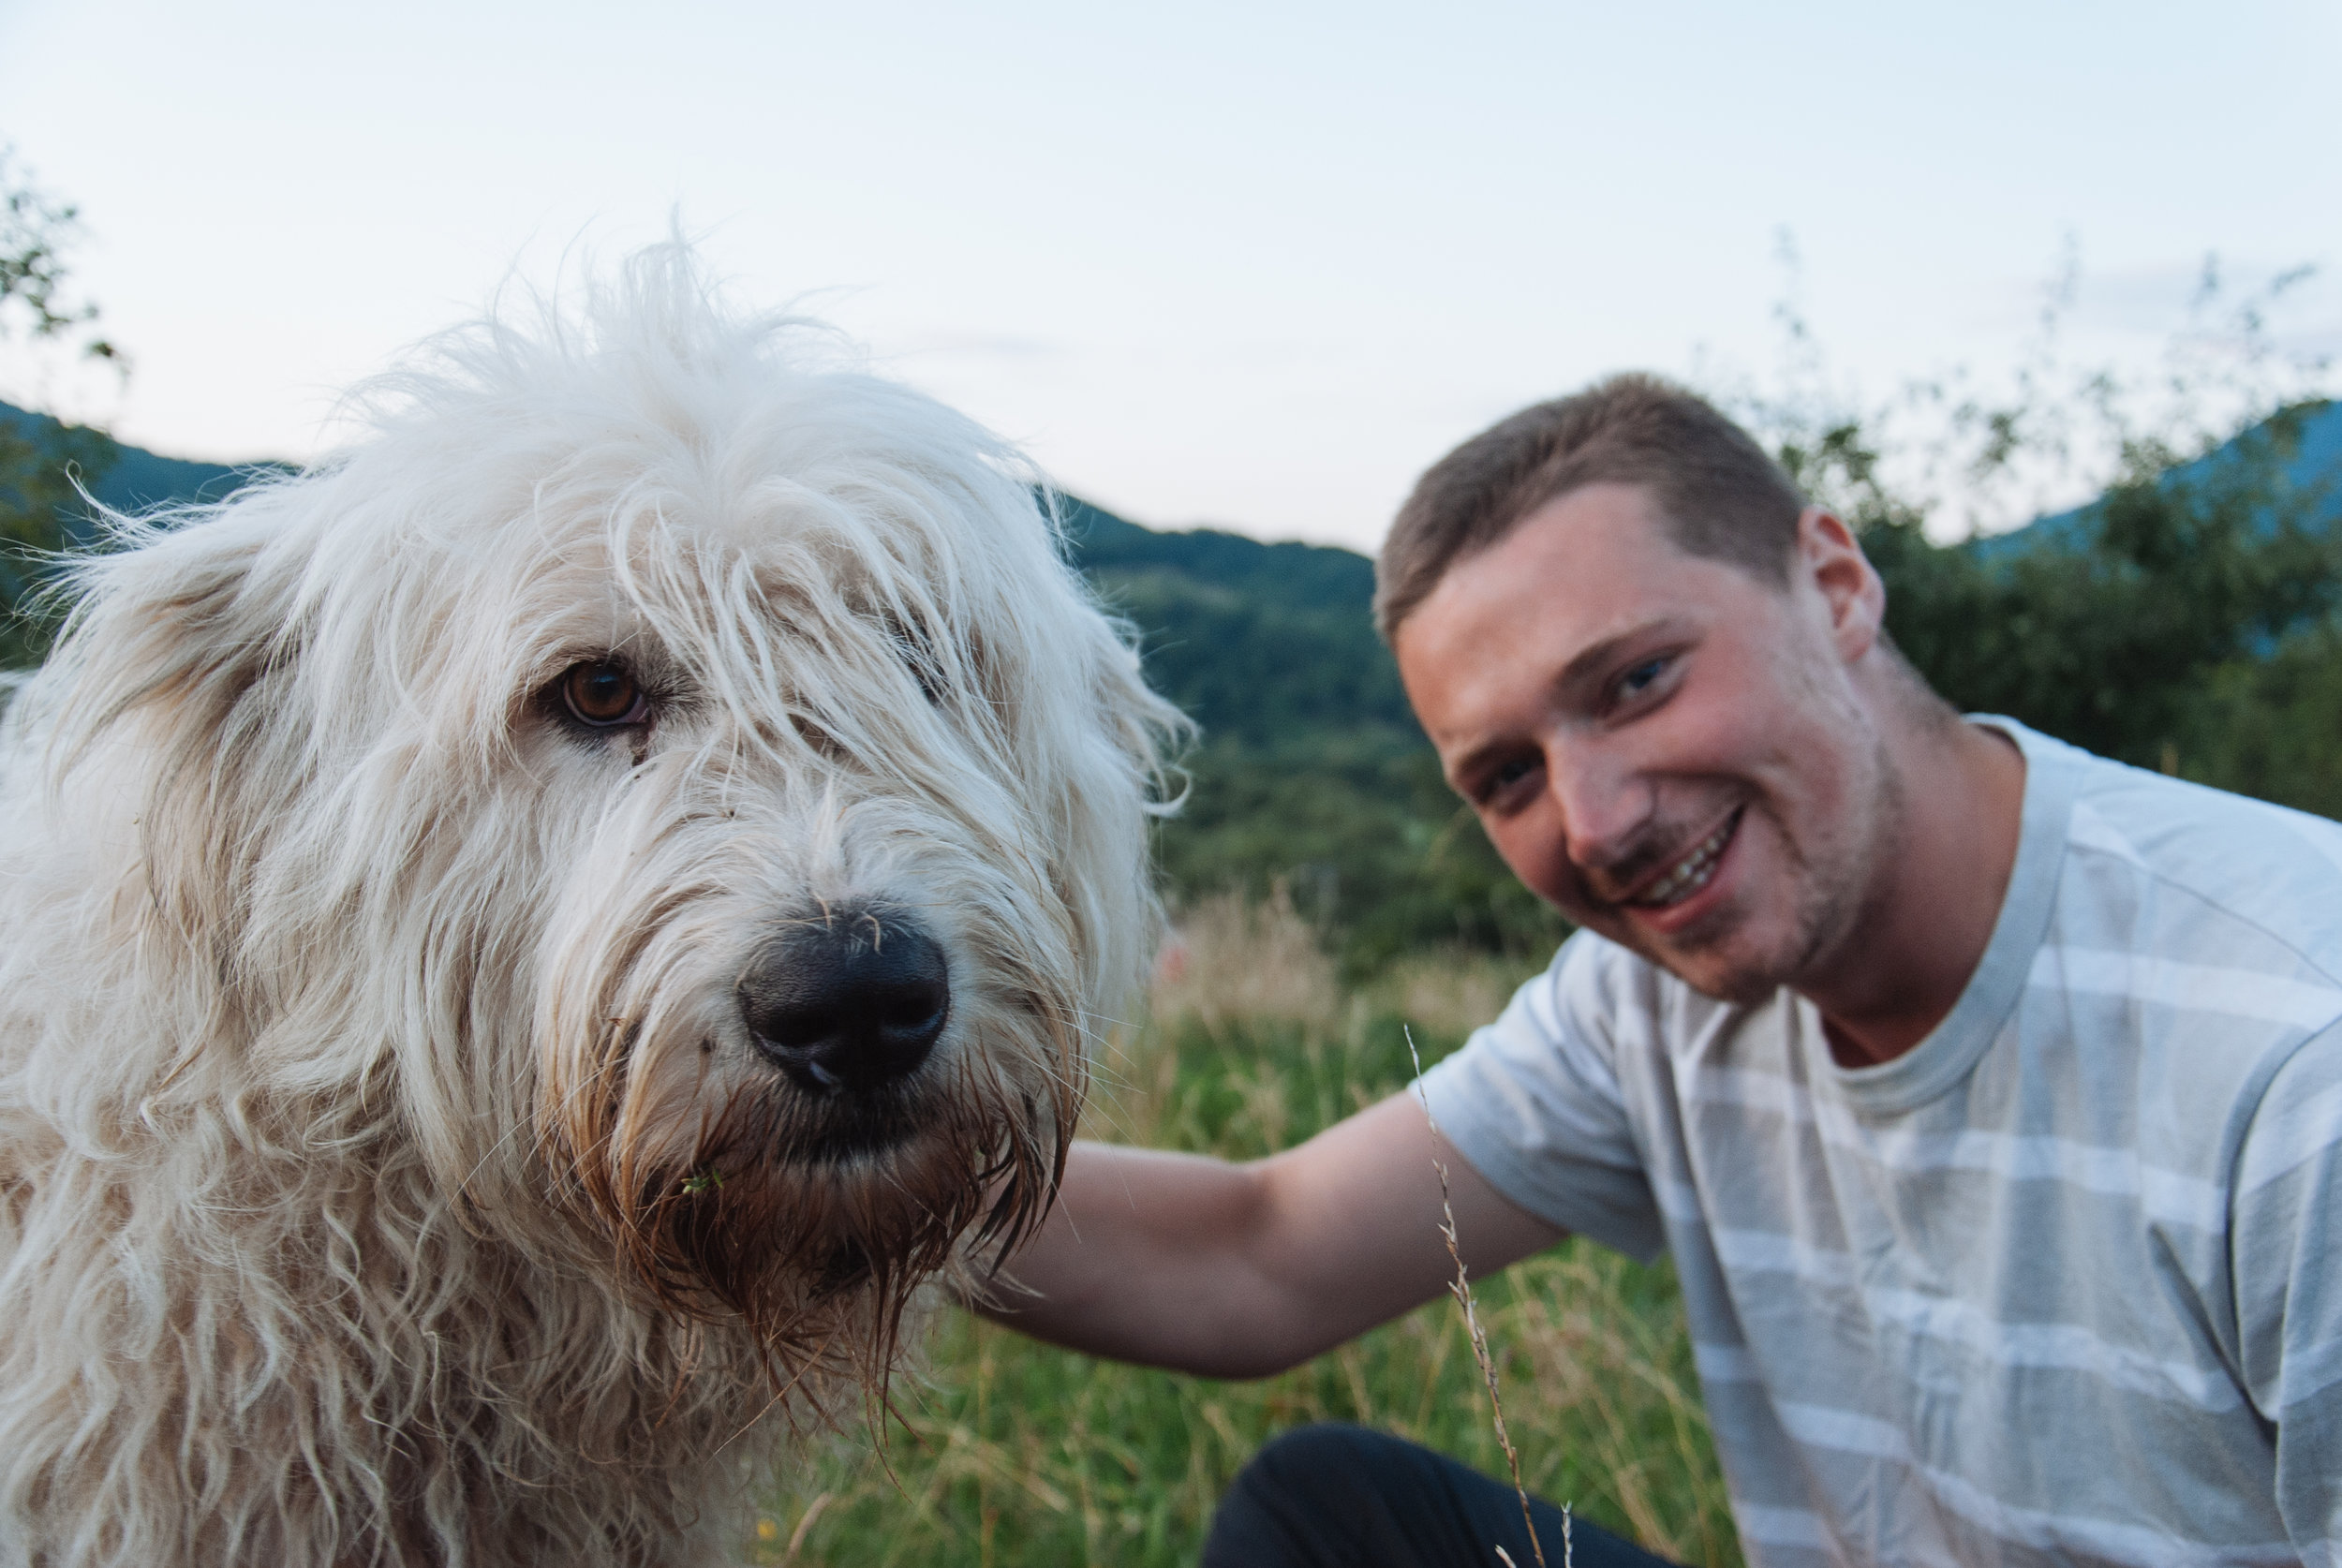 Giant Romanian sheep dog came and sat with us for a large part of the evening